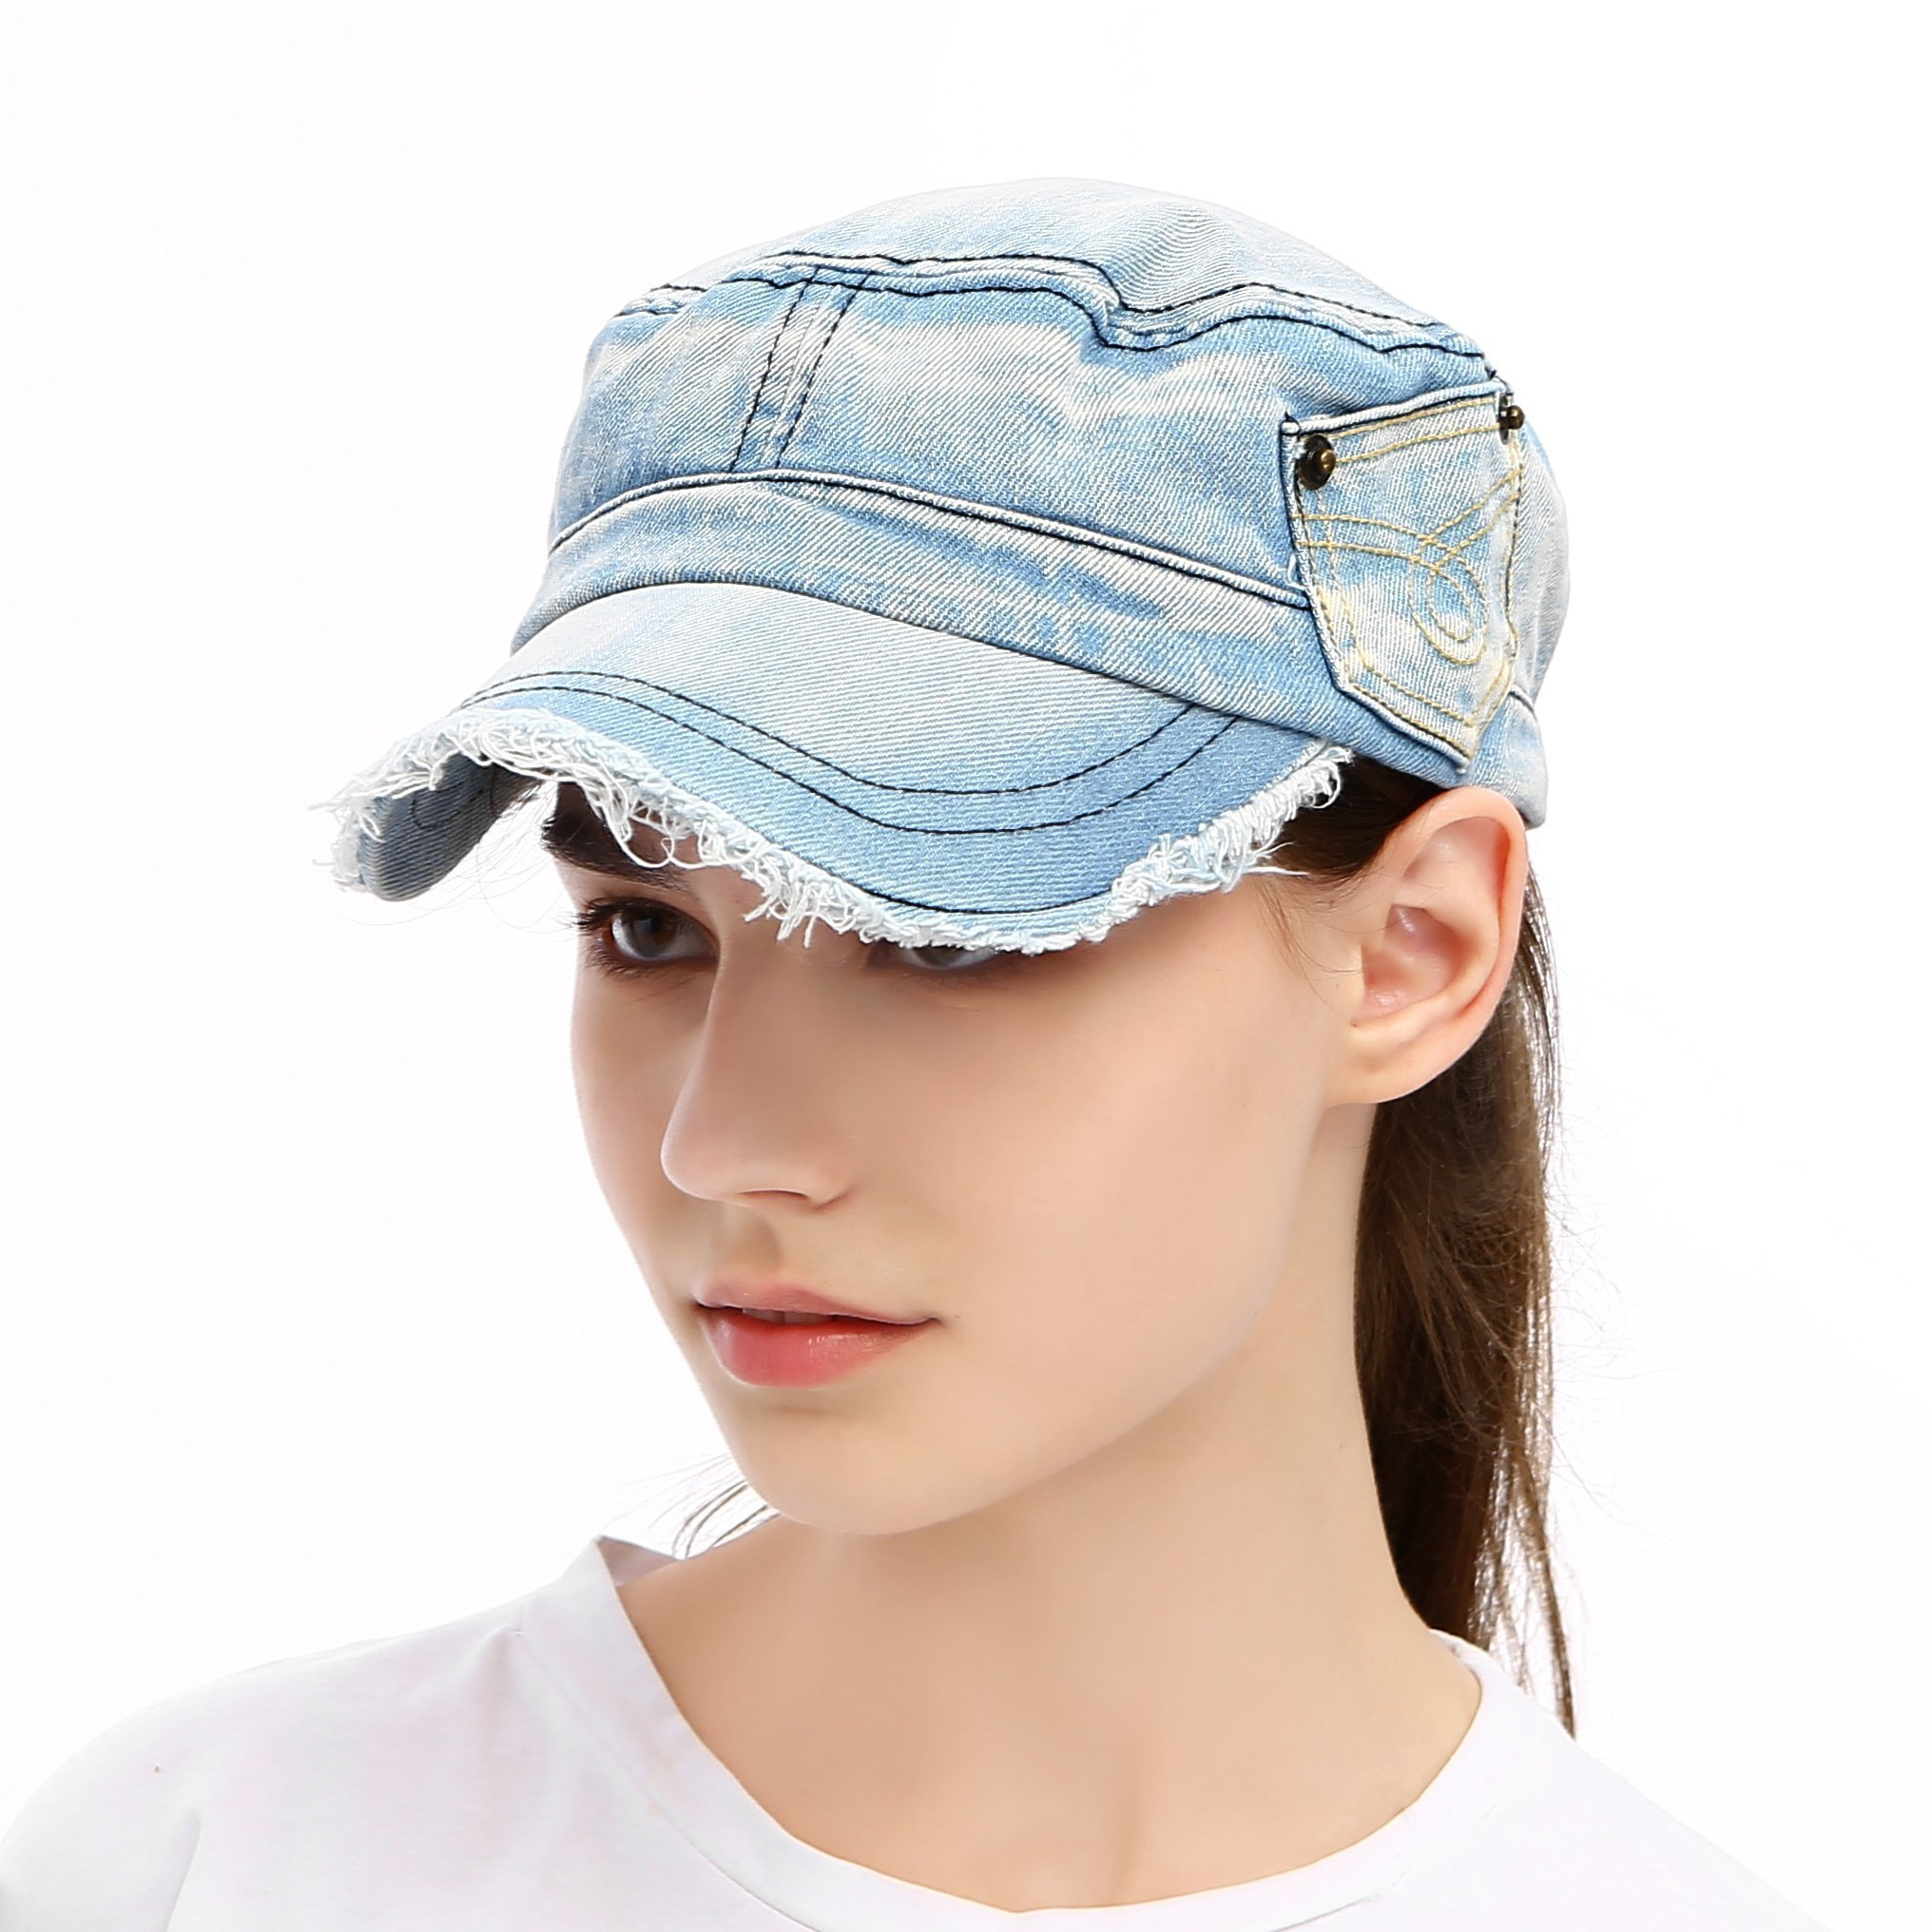 Vankerful Vintage Washed Denim Cotton Peaked Baseball Cap for Men and Women Distressed Cadet Army Cap Military Style Corps Hat Cap Visor Flat Top Adjustable Baseball Hat Light Blue